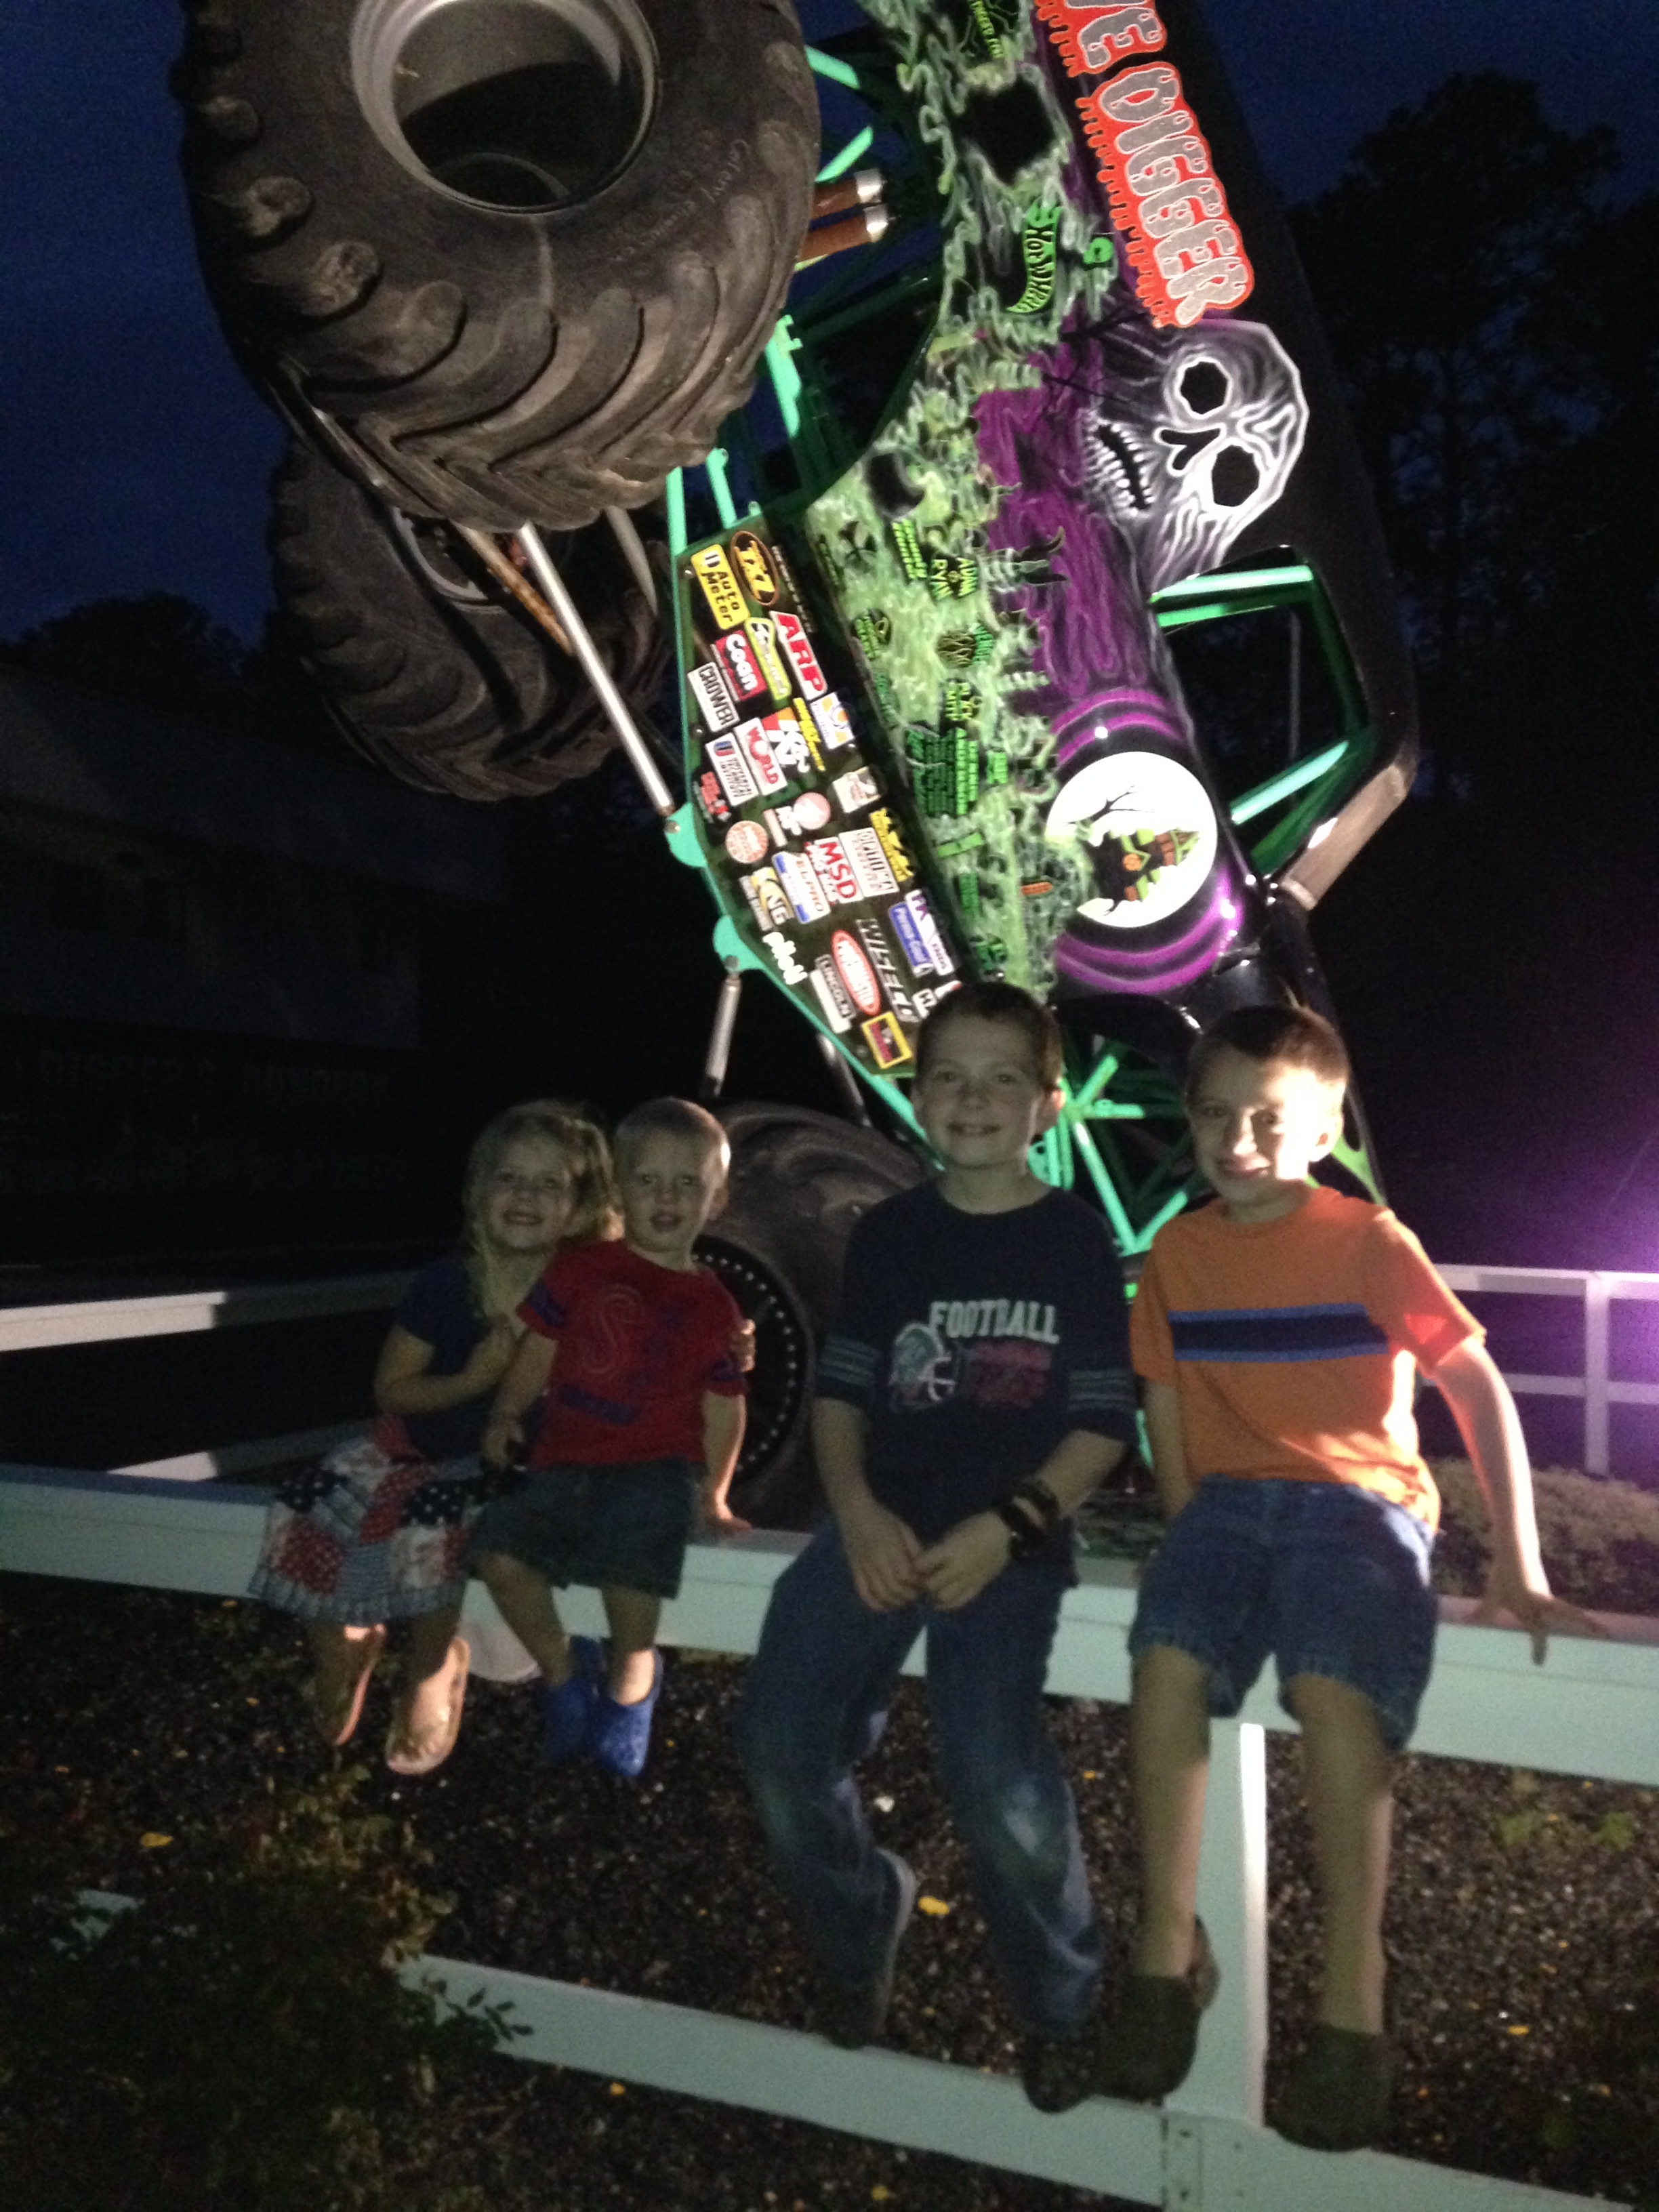 The kids sitting in front of another monster truck